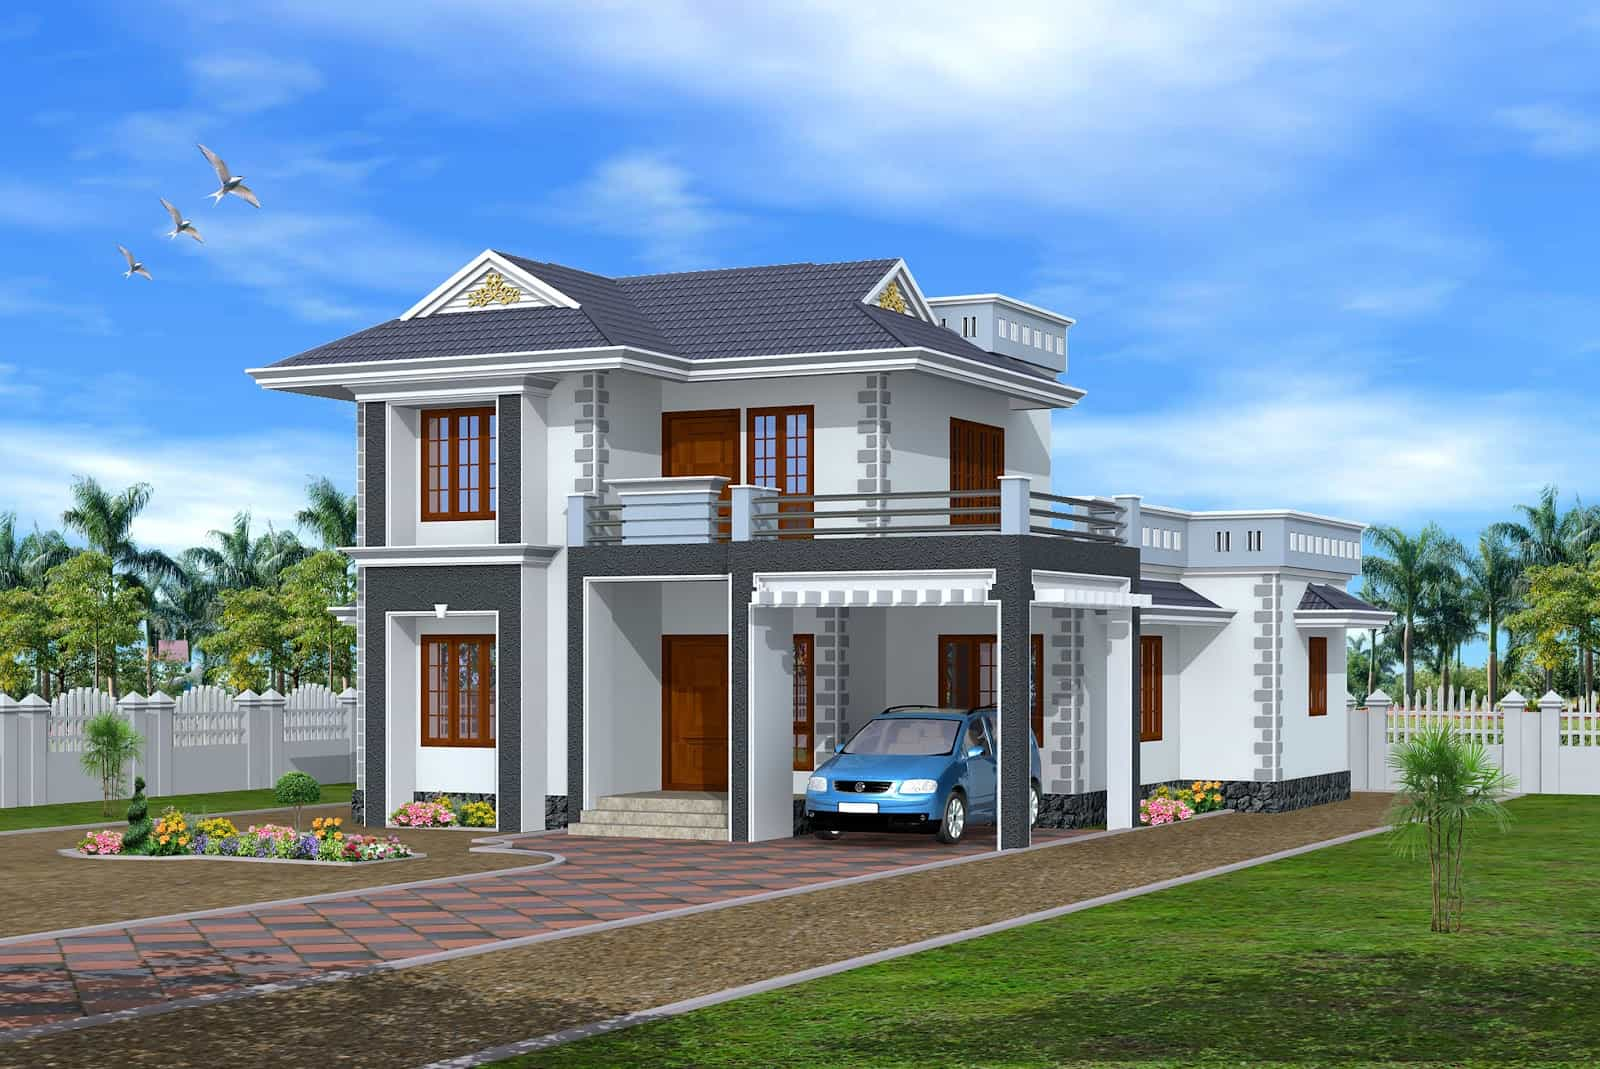 1x1.trans 3 bedroom 3D exterior House design at 1845 sq.ft